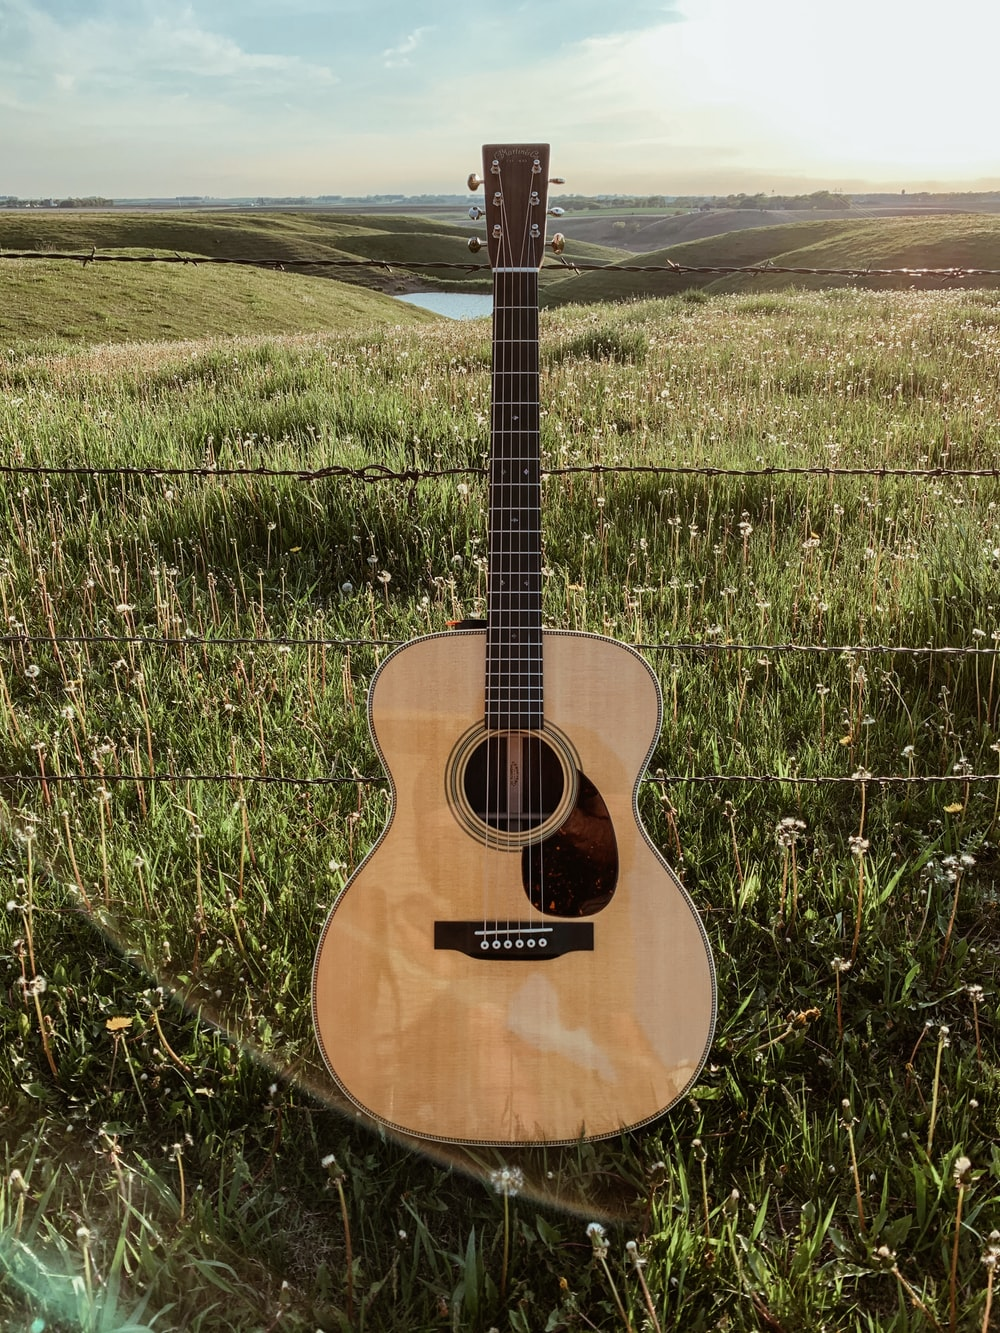 brown acoustic guitar on green grass field during daytime